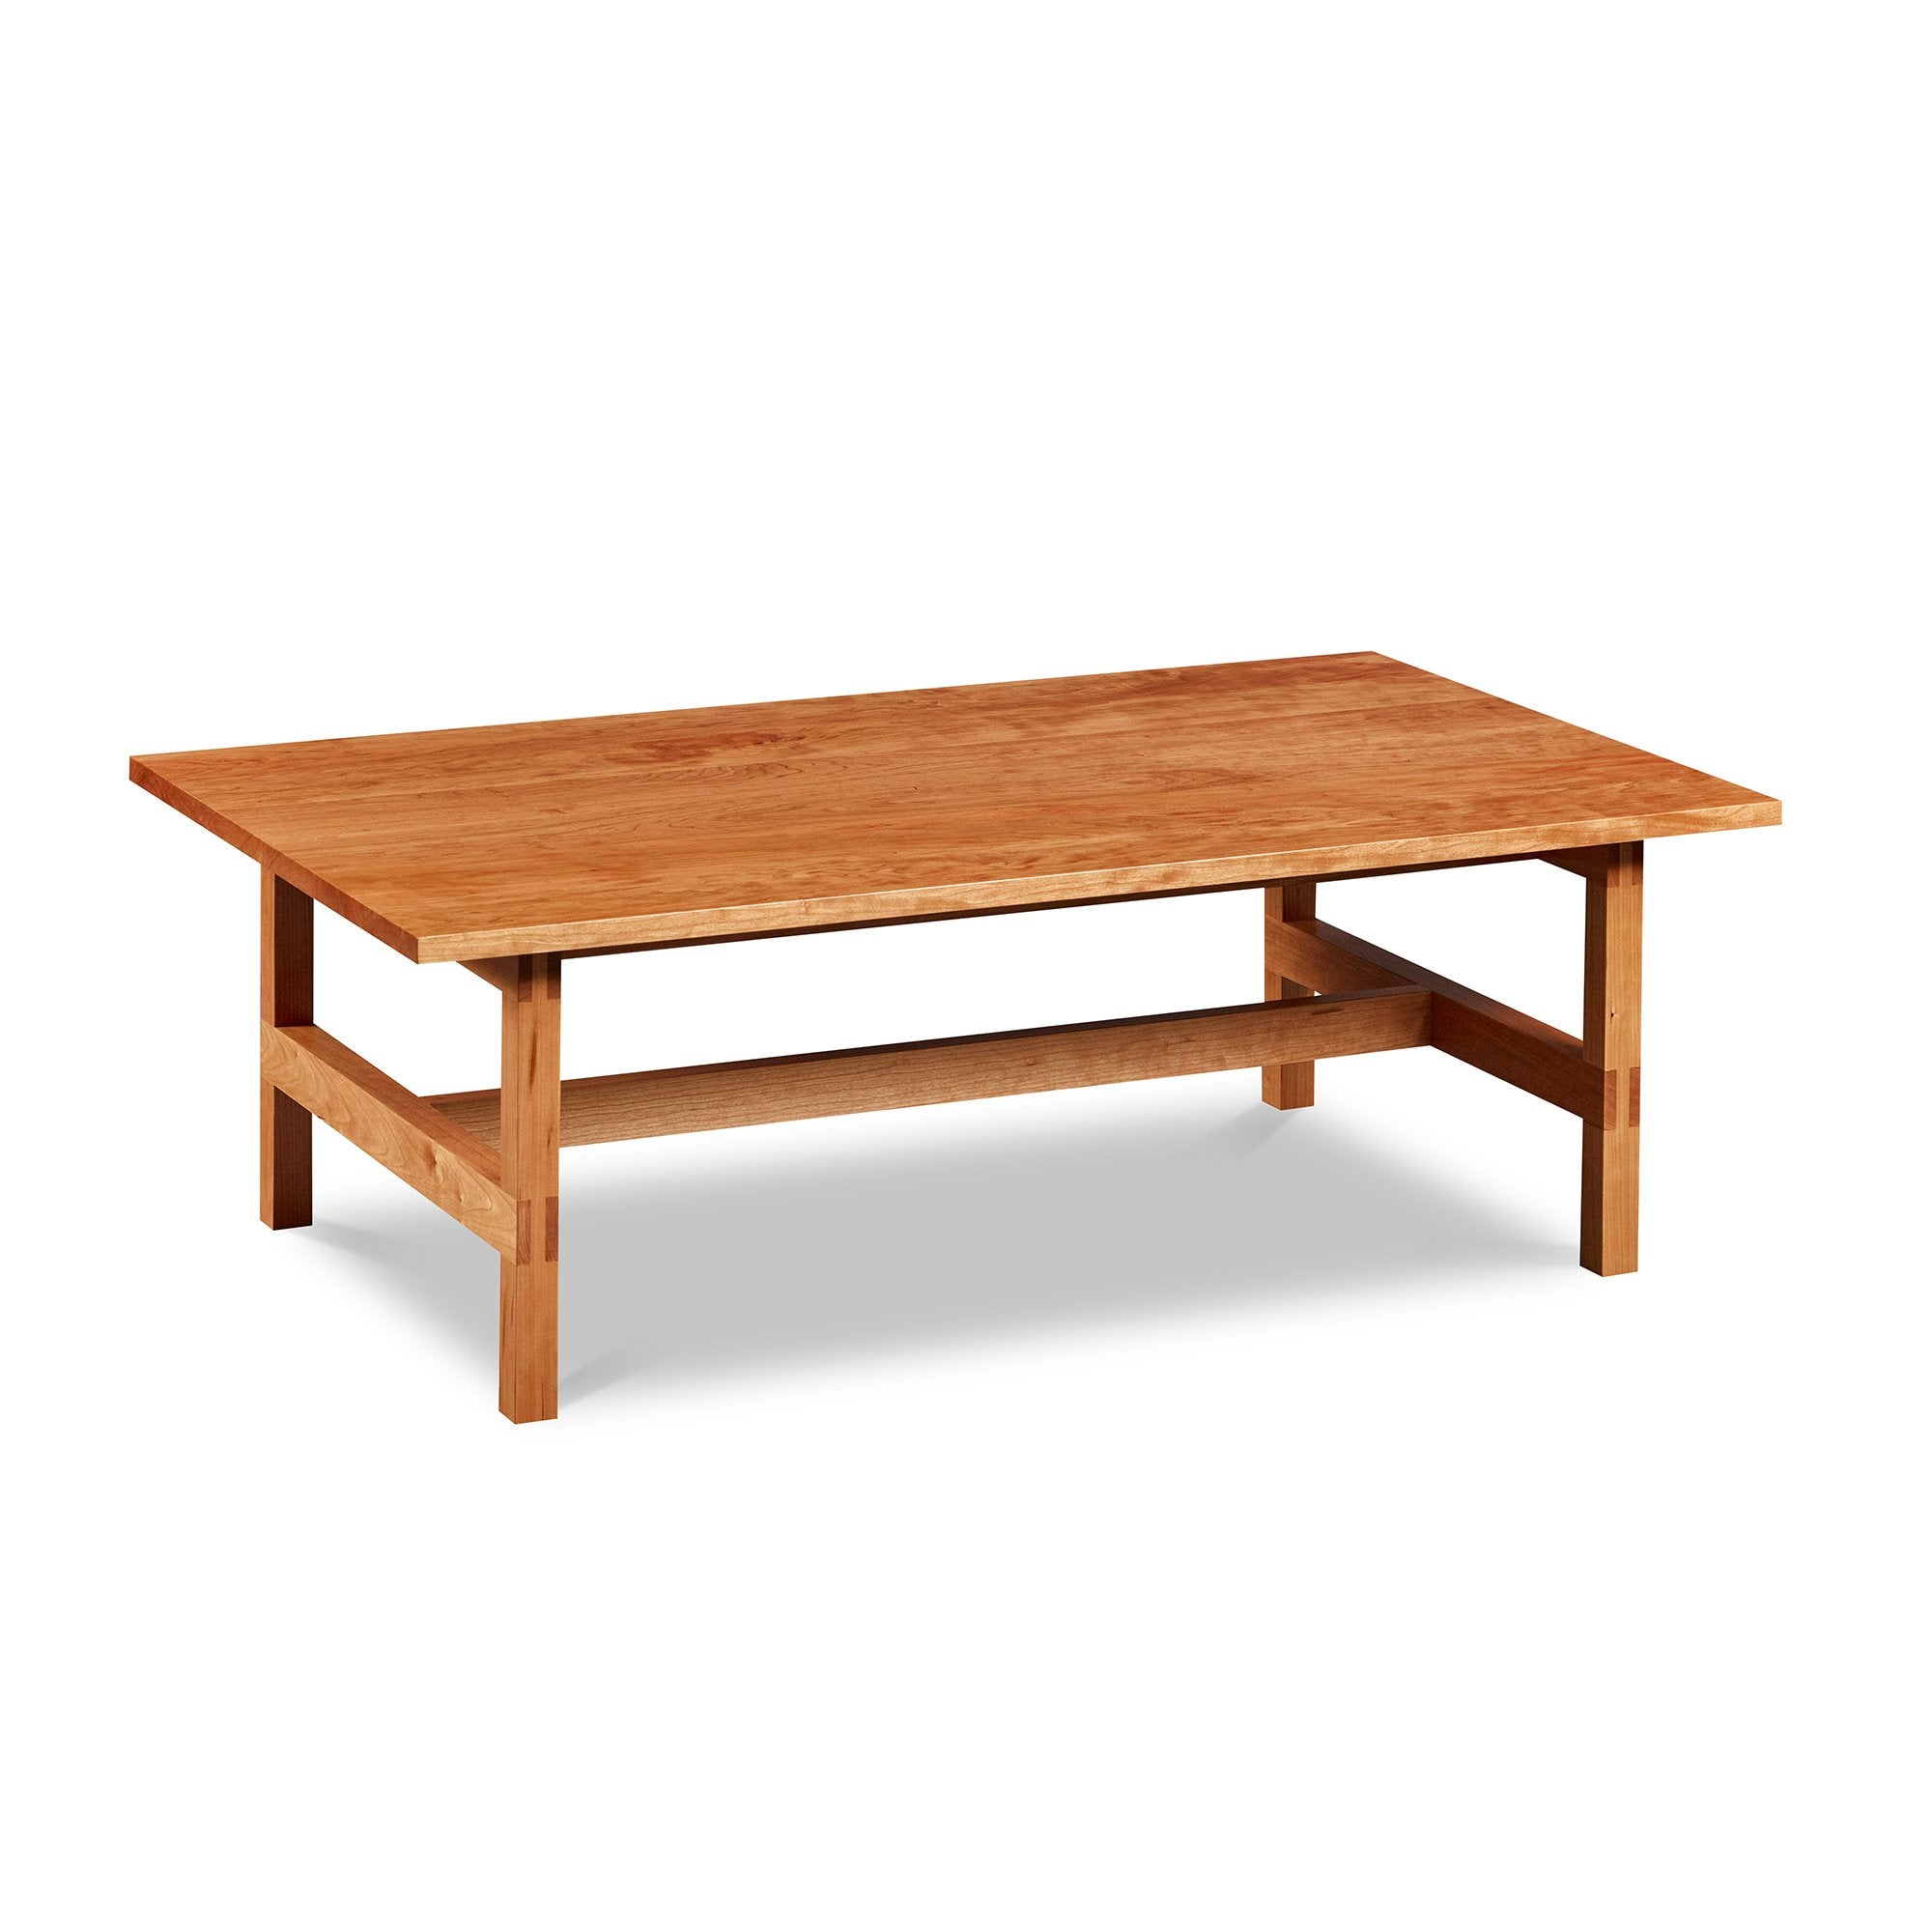 Modern rectangular trestle-style coffee table with visible joinery in cherry, from Maine's Chilton Furniture Co.